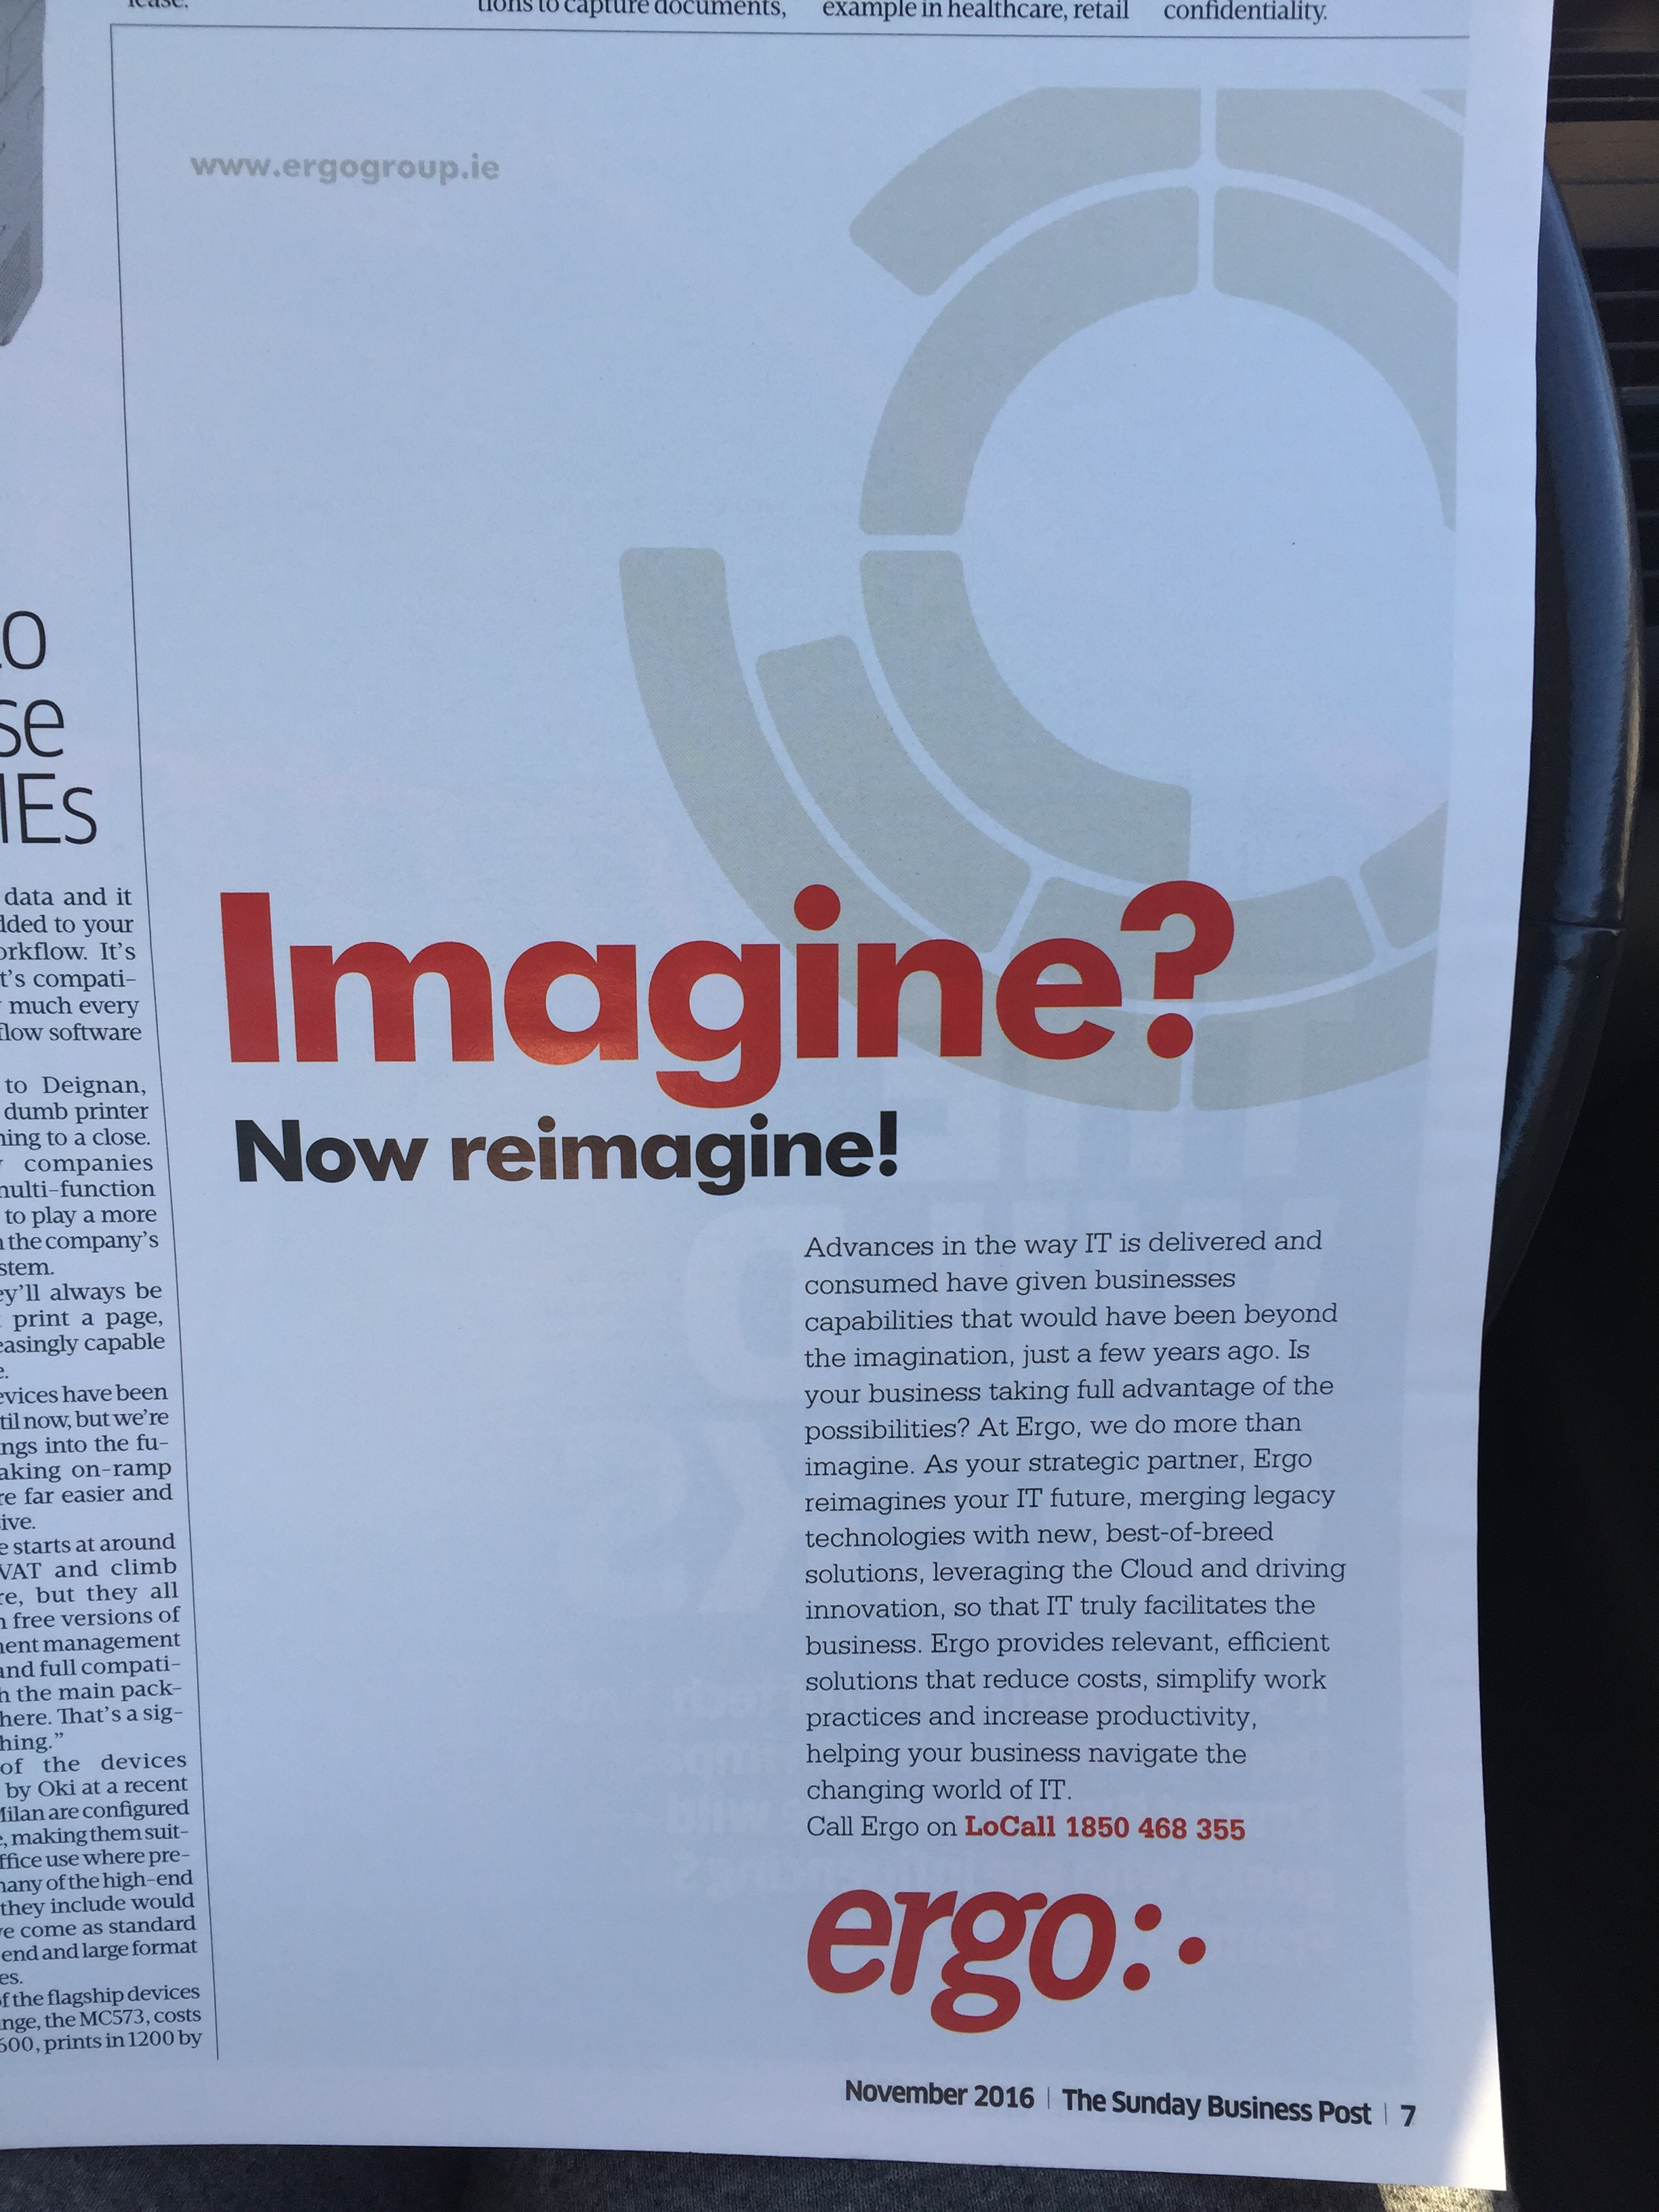 Ergo – Imagine? Now reimagine!